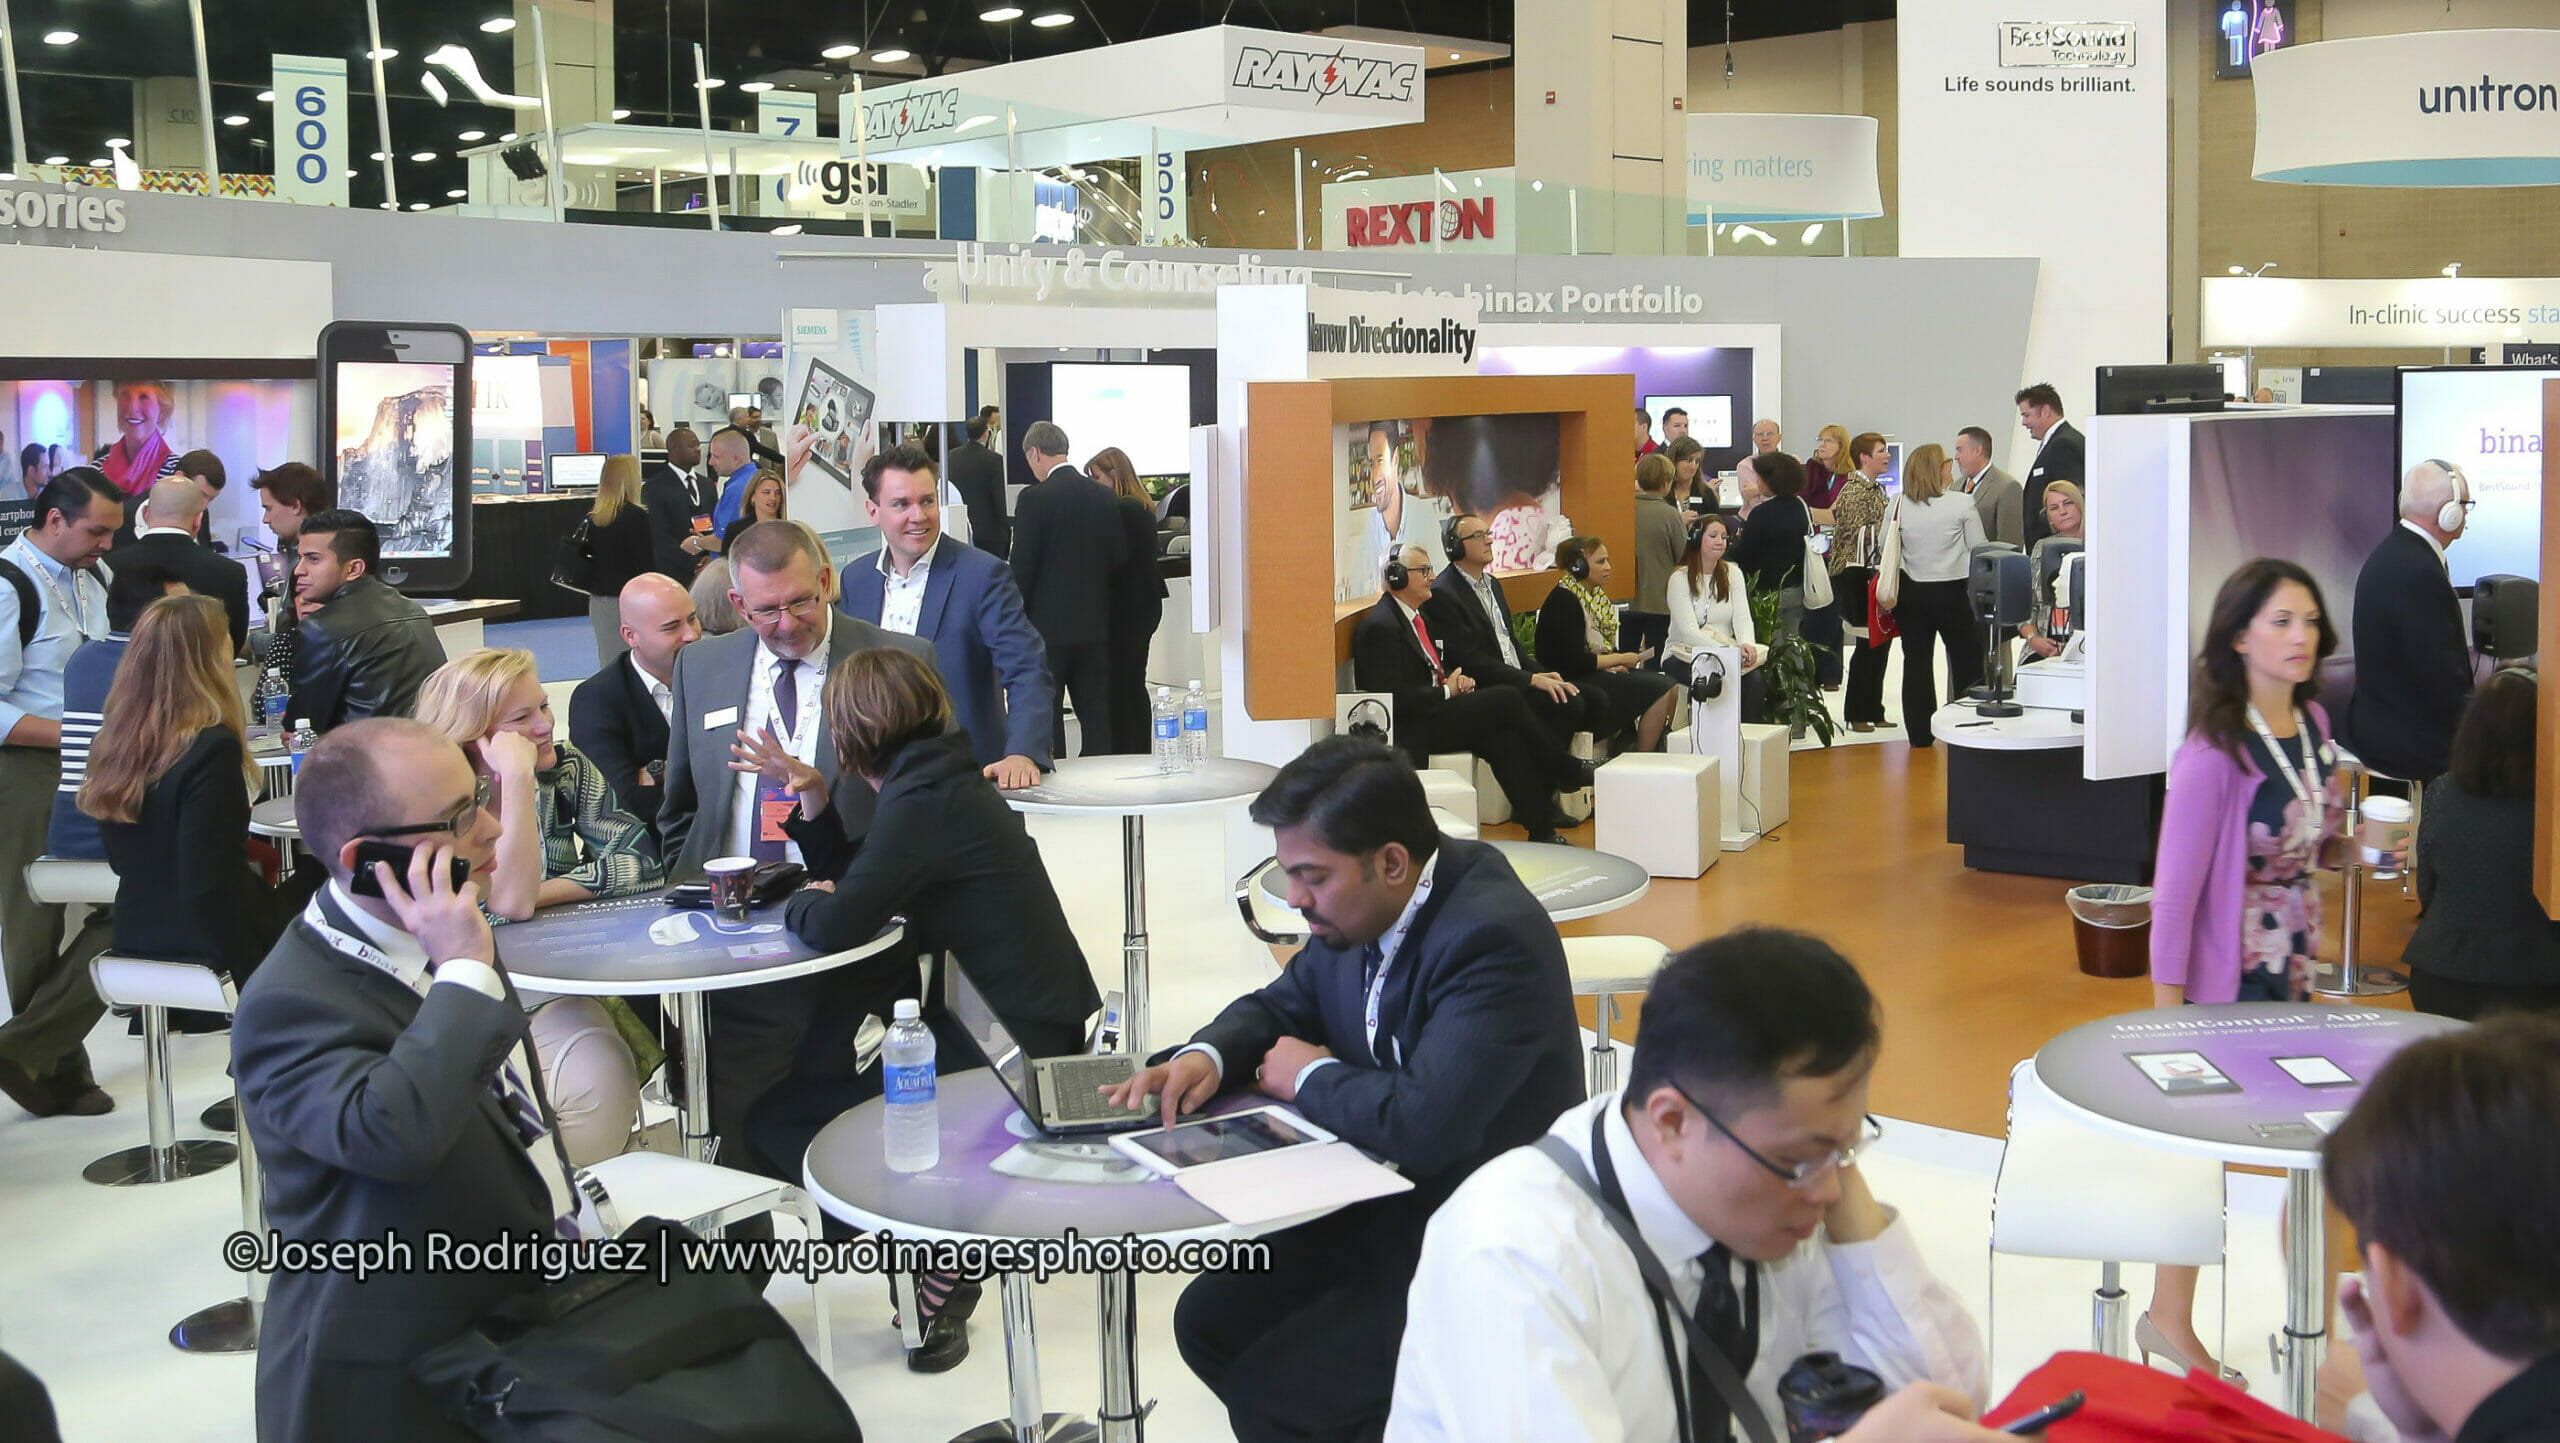 Convention-Tradeshow-Photography-by-Professional-Images-Photography-showing-attendees-engaging-and interacting-exhibitor-booth